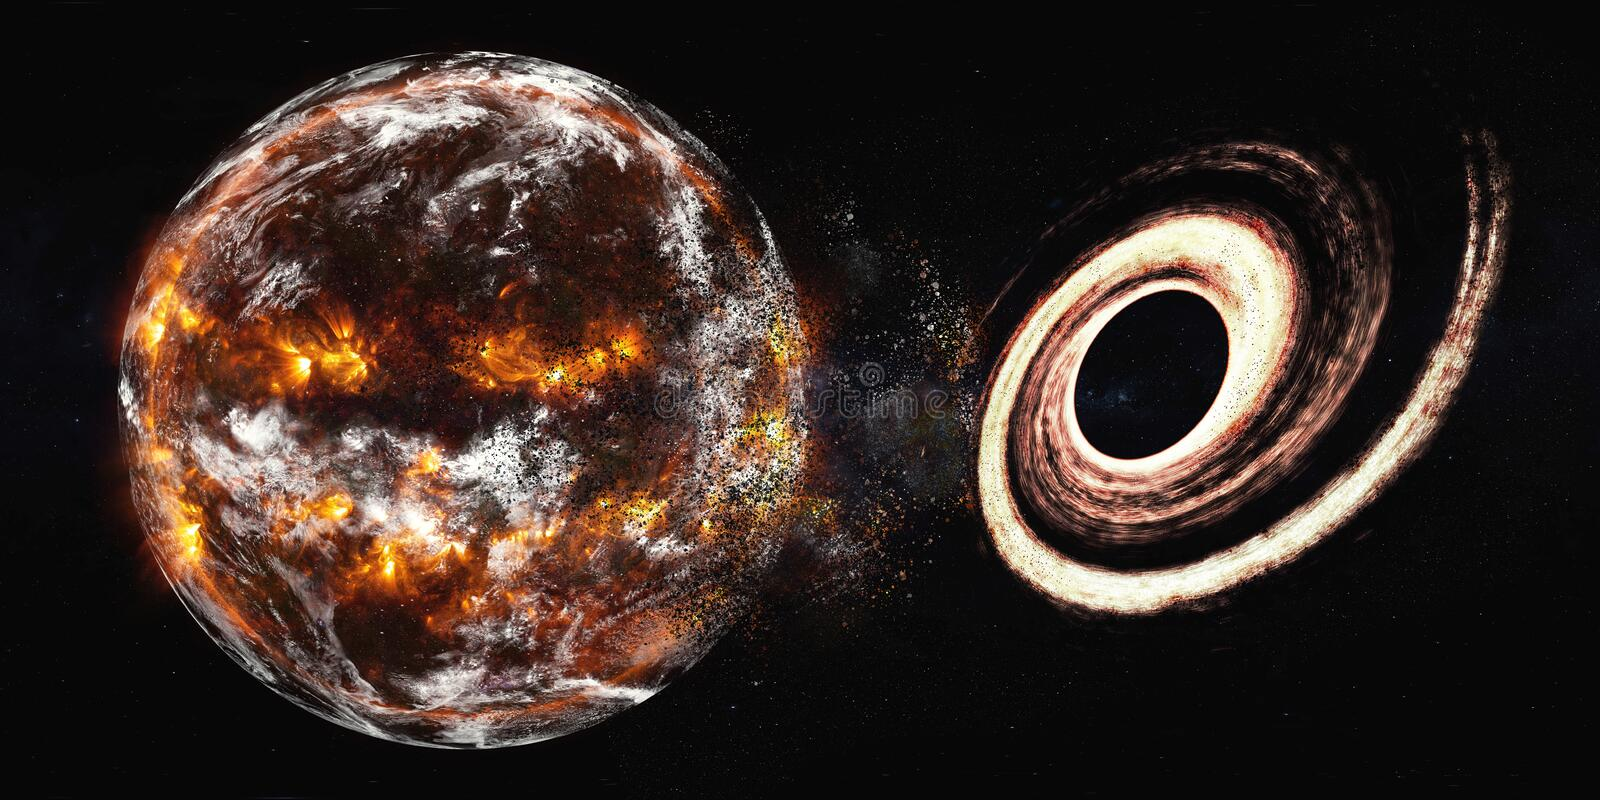 Planet Earth with black hole explosion royalty free illustration